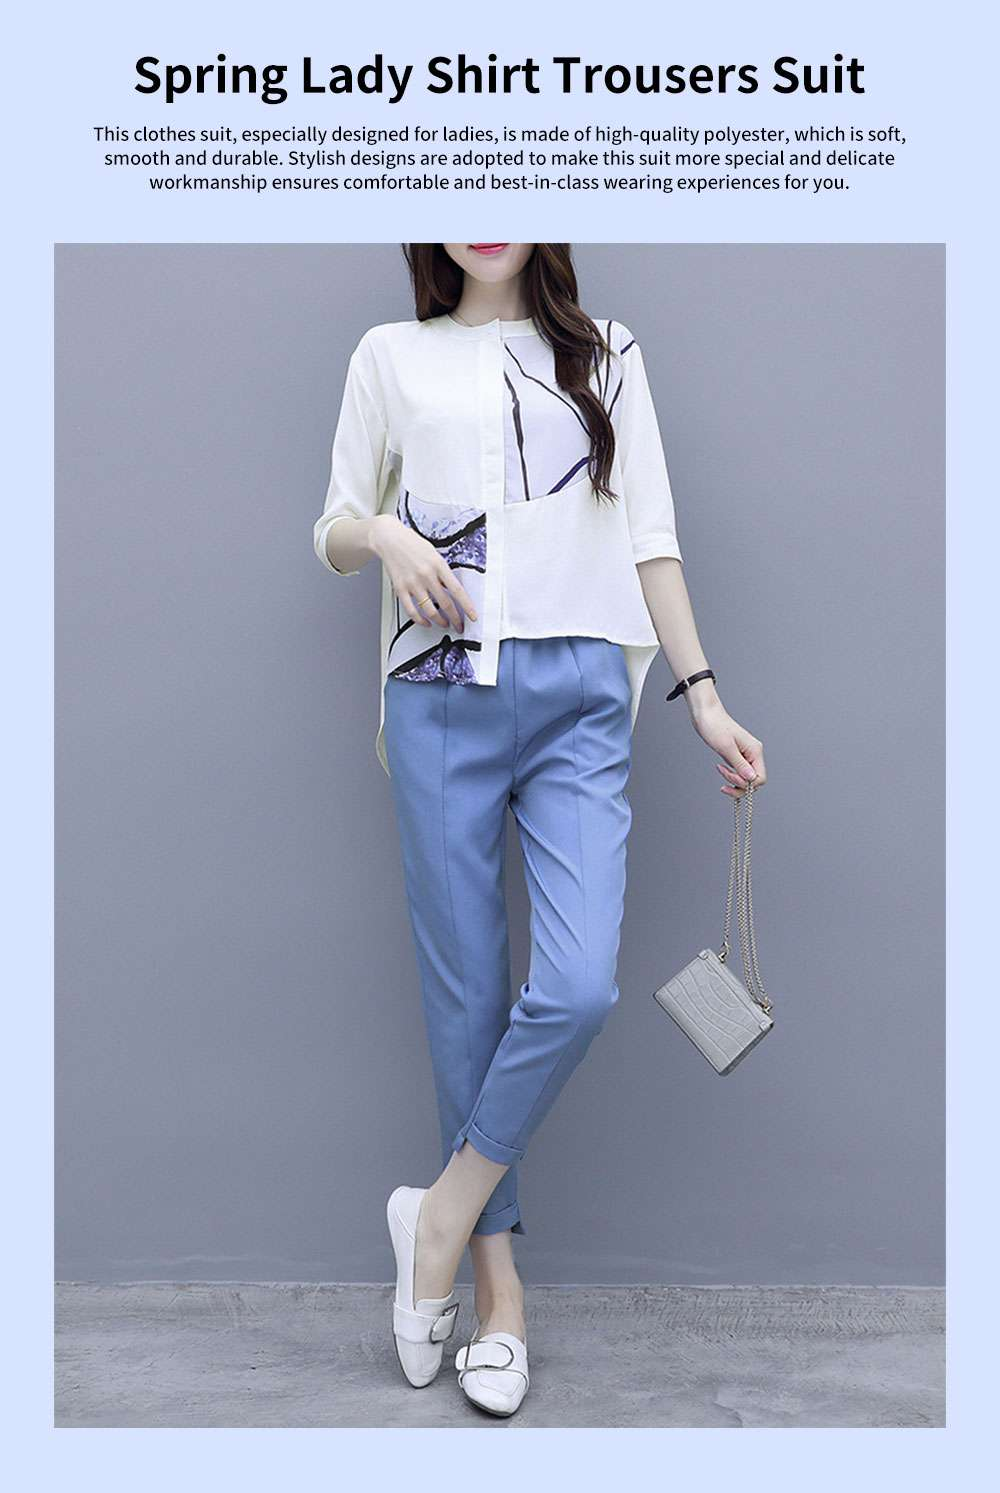 Minimalist Atmosphere Spring Lady Shirt Casual Trousers Suit Fashion Light Feet Pants Jointed Style Top for Women 0